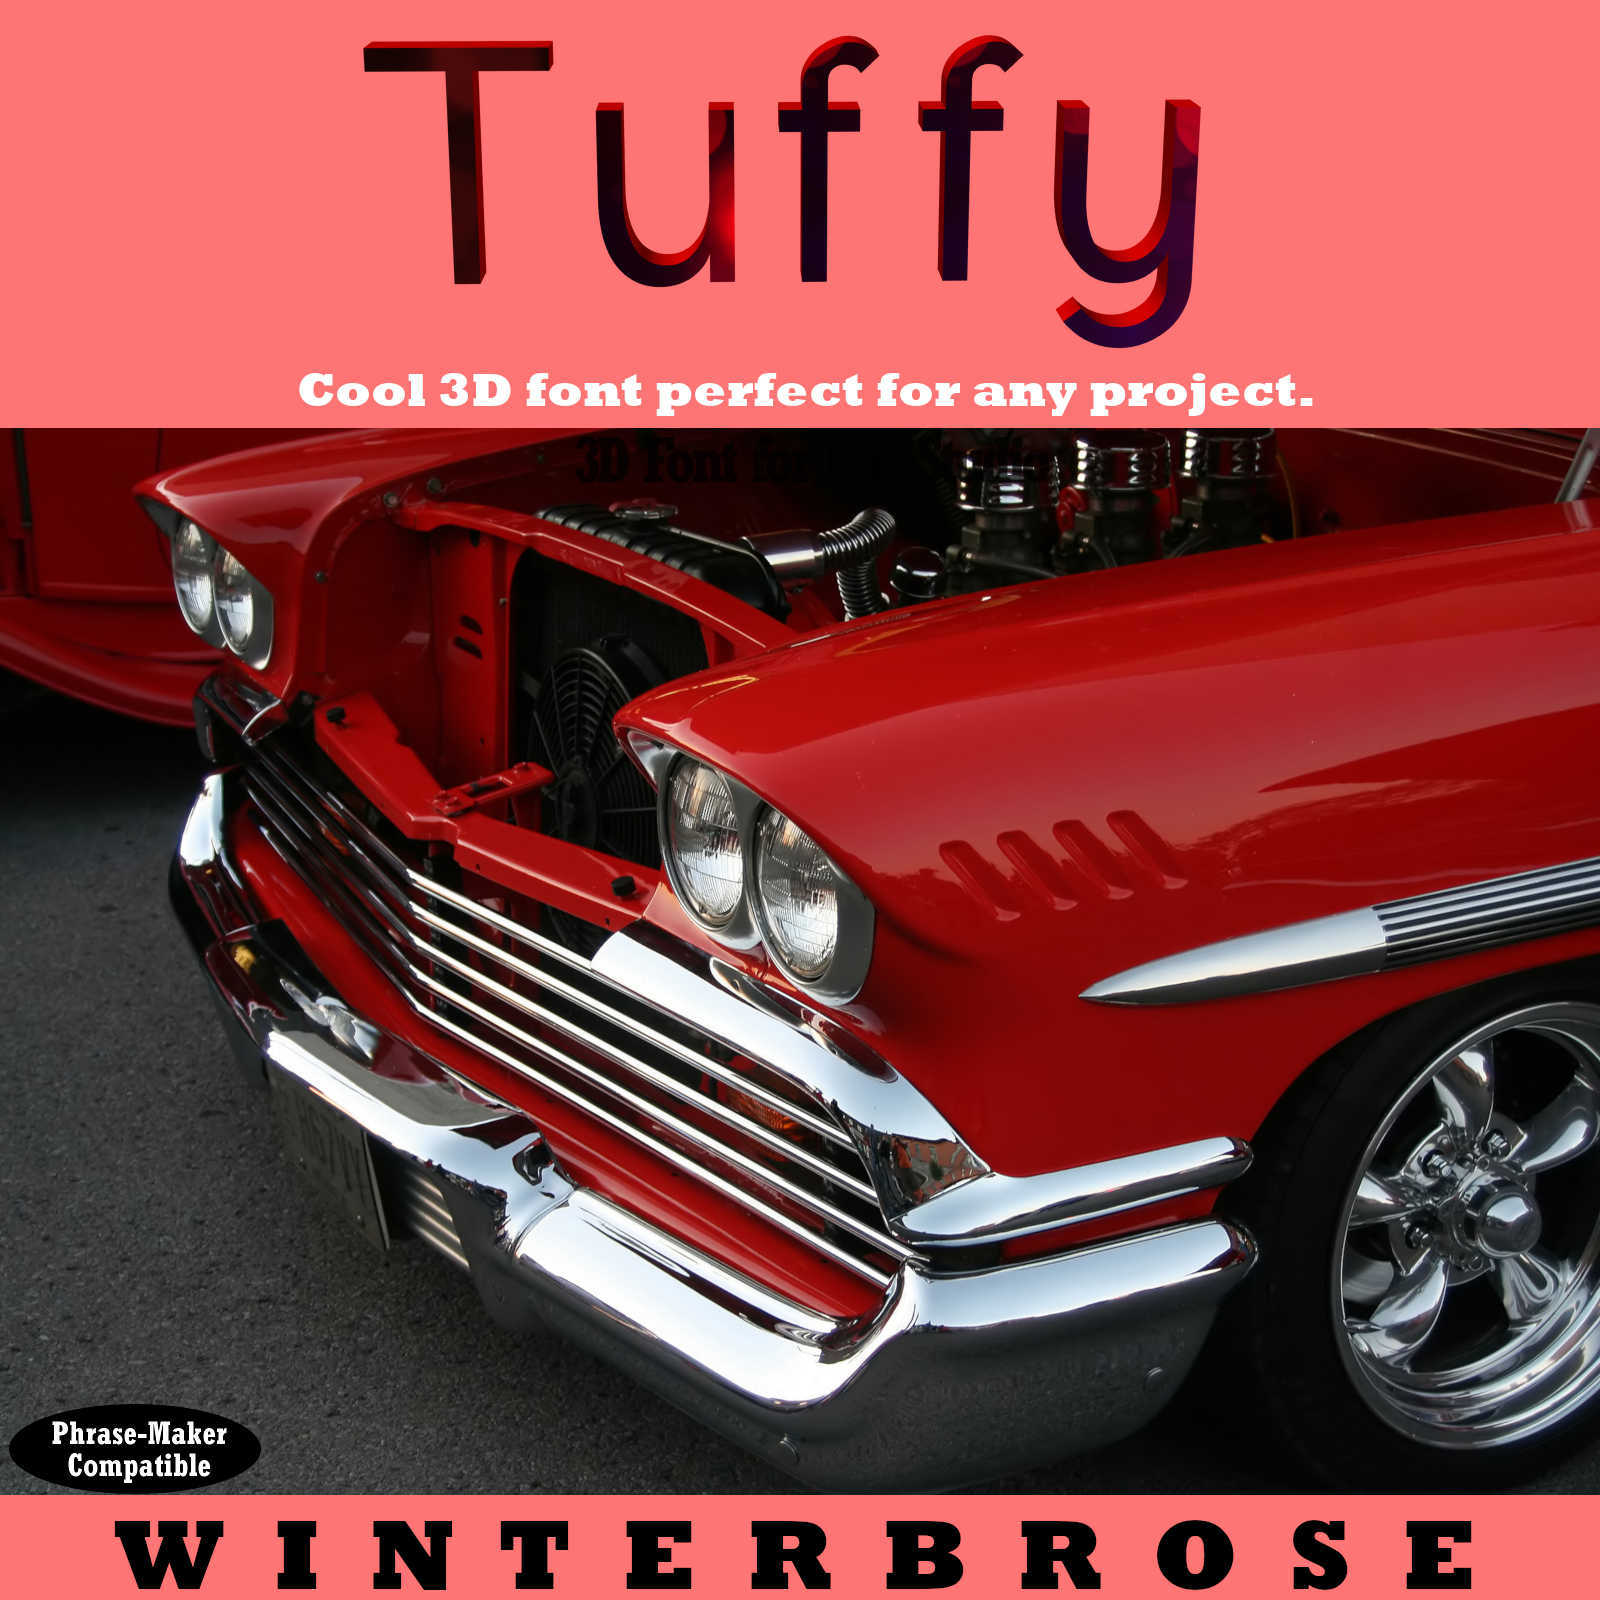 3D FONT - Tuffy3D for Daz Studio by Winterbrose